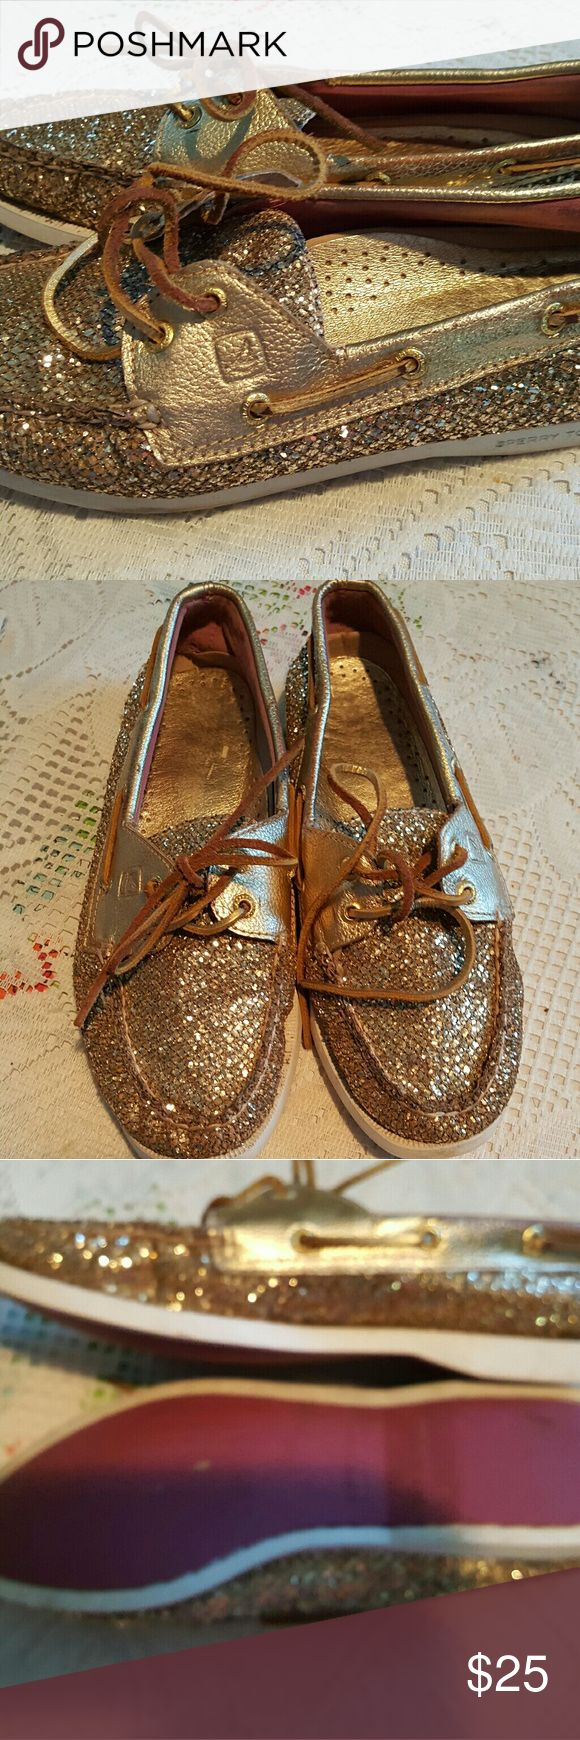 Sperrys gold sparkly shoes sz 8 loafers In great used condition Sperry Shoes Flats & Loafers